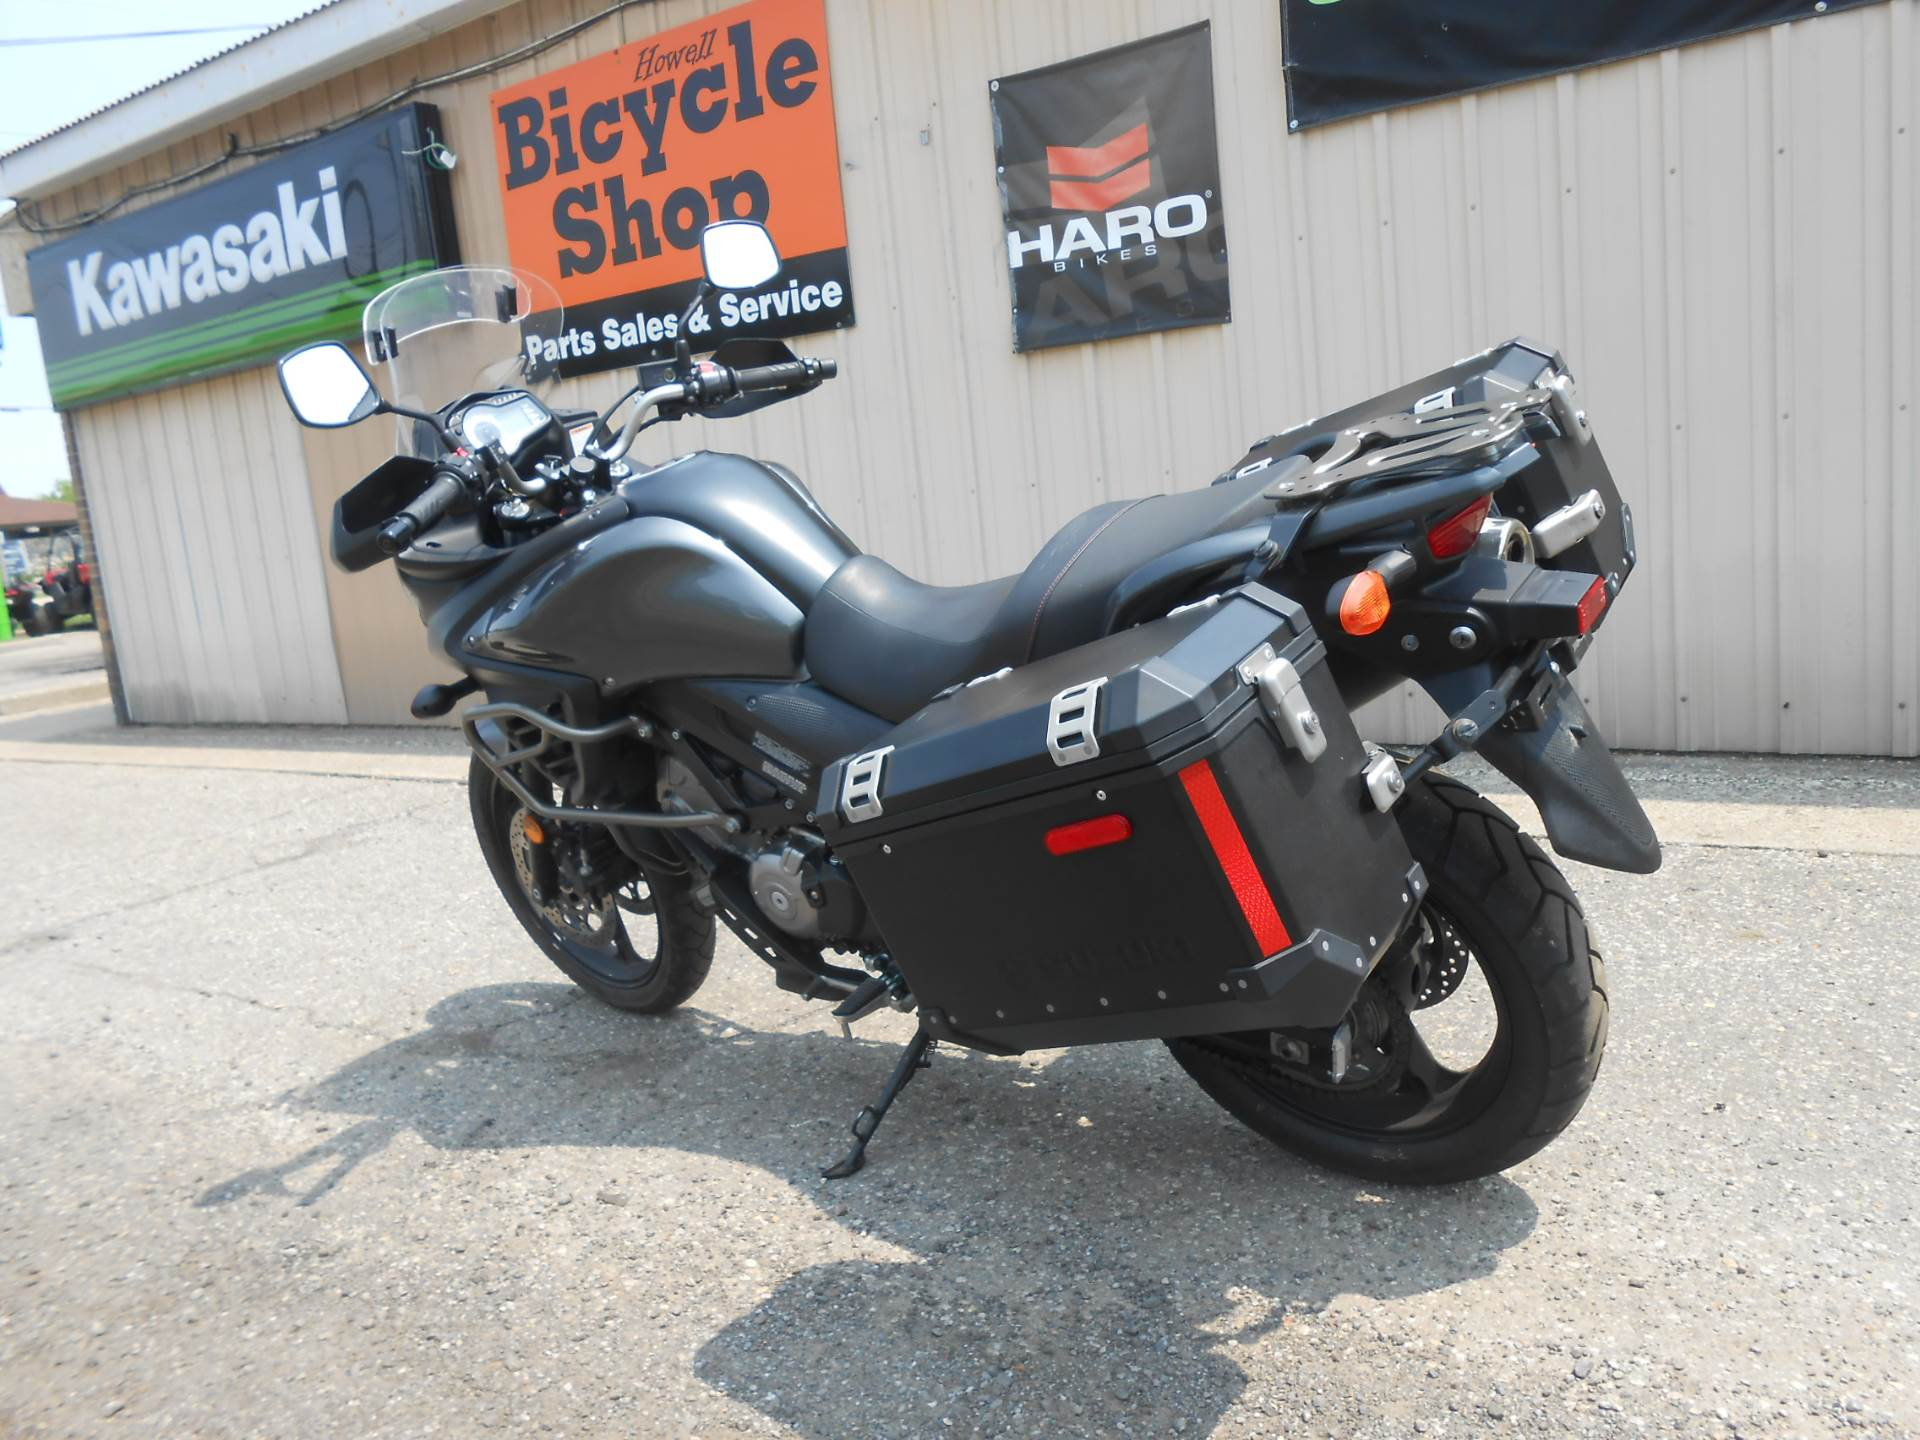 2013 Suzuki V-Strom 650 ABS Adventure in Howell, Michigan - Photo 8